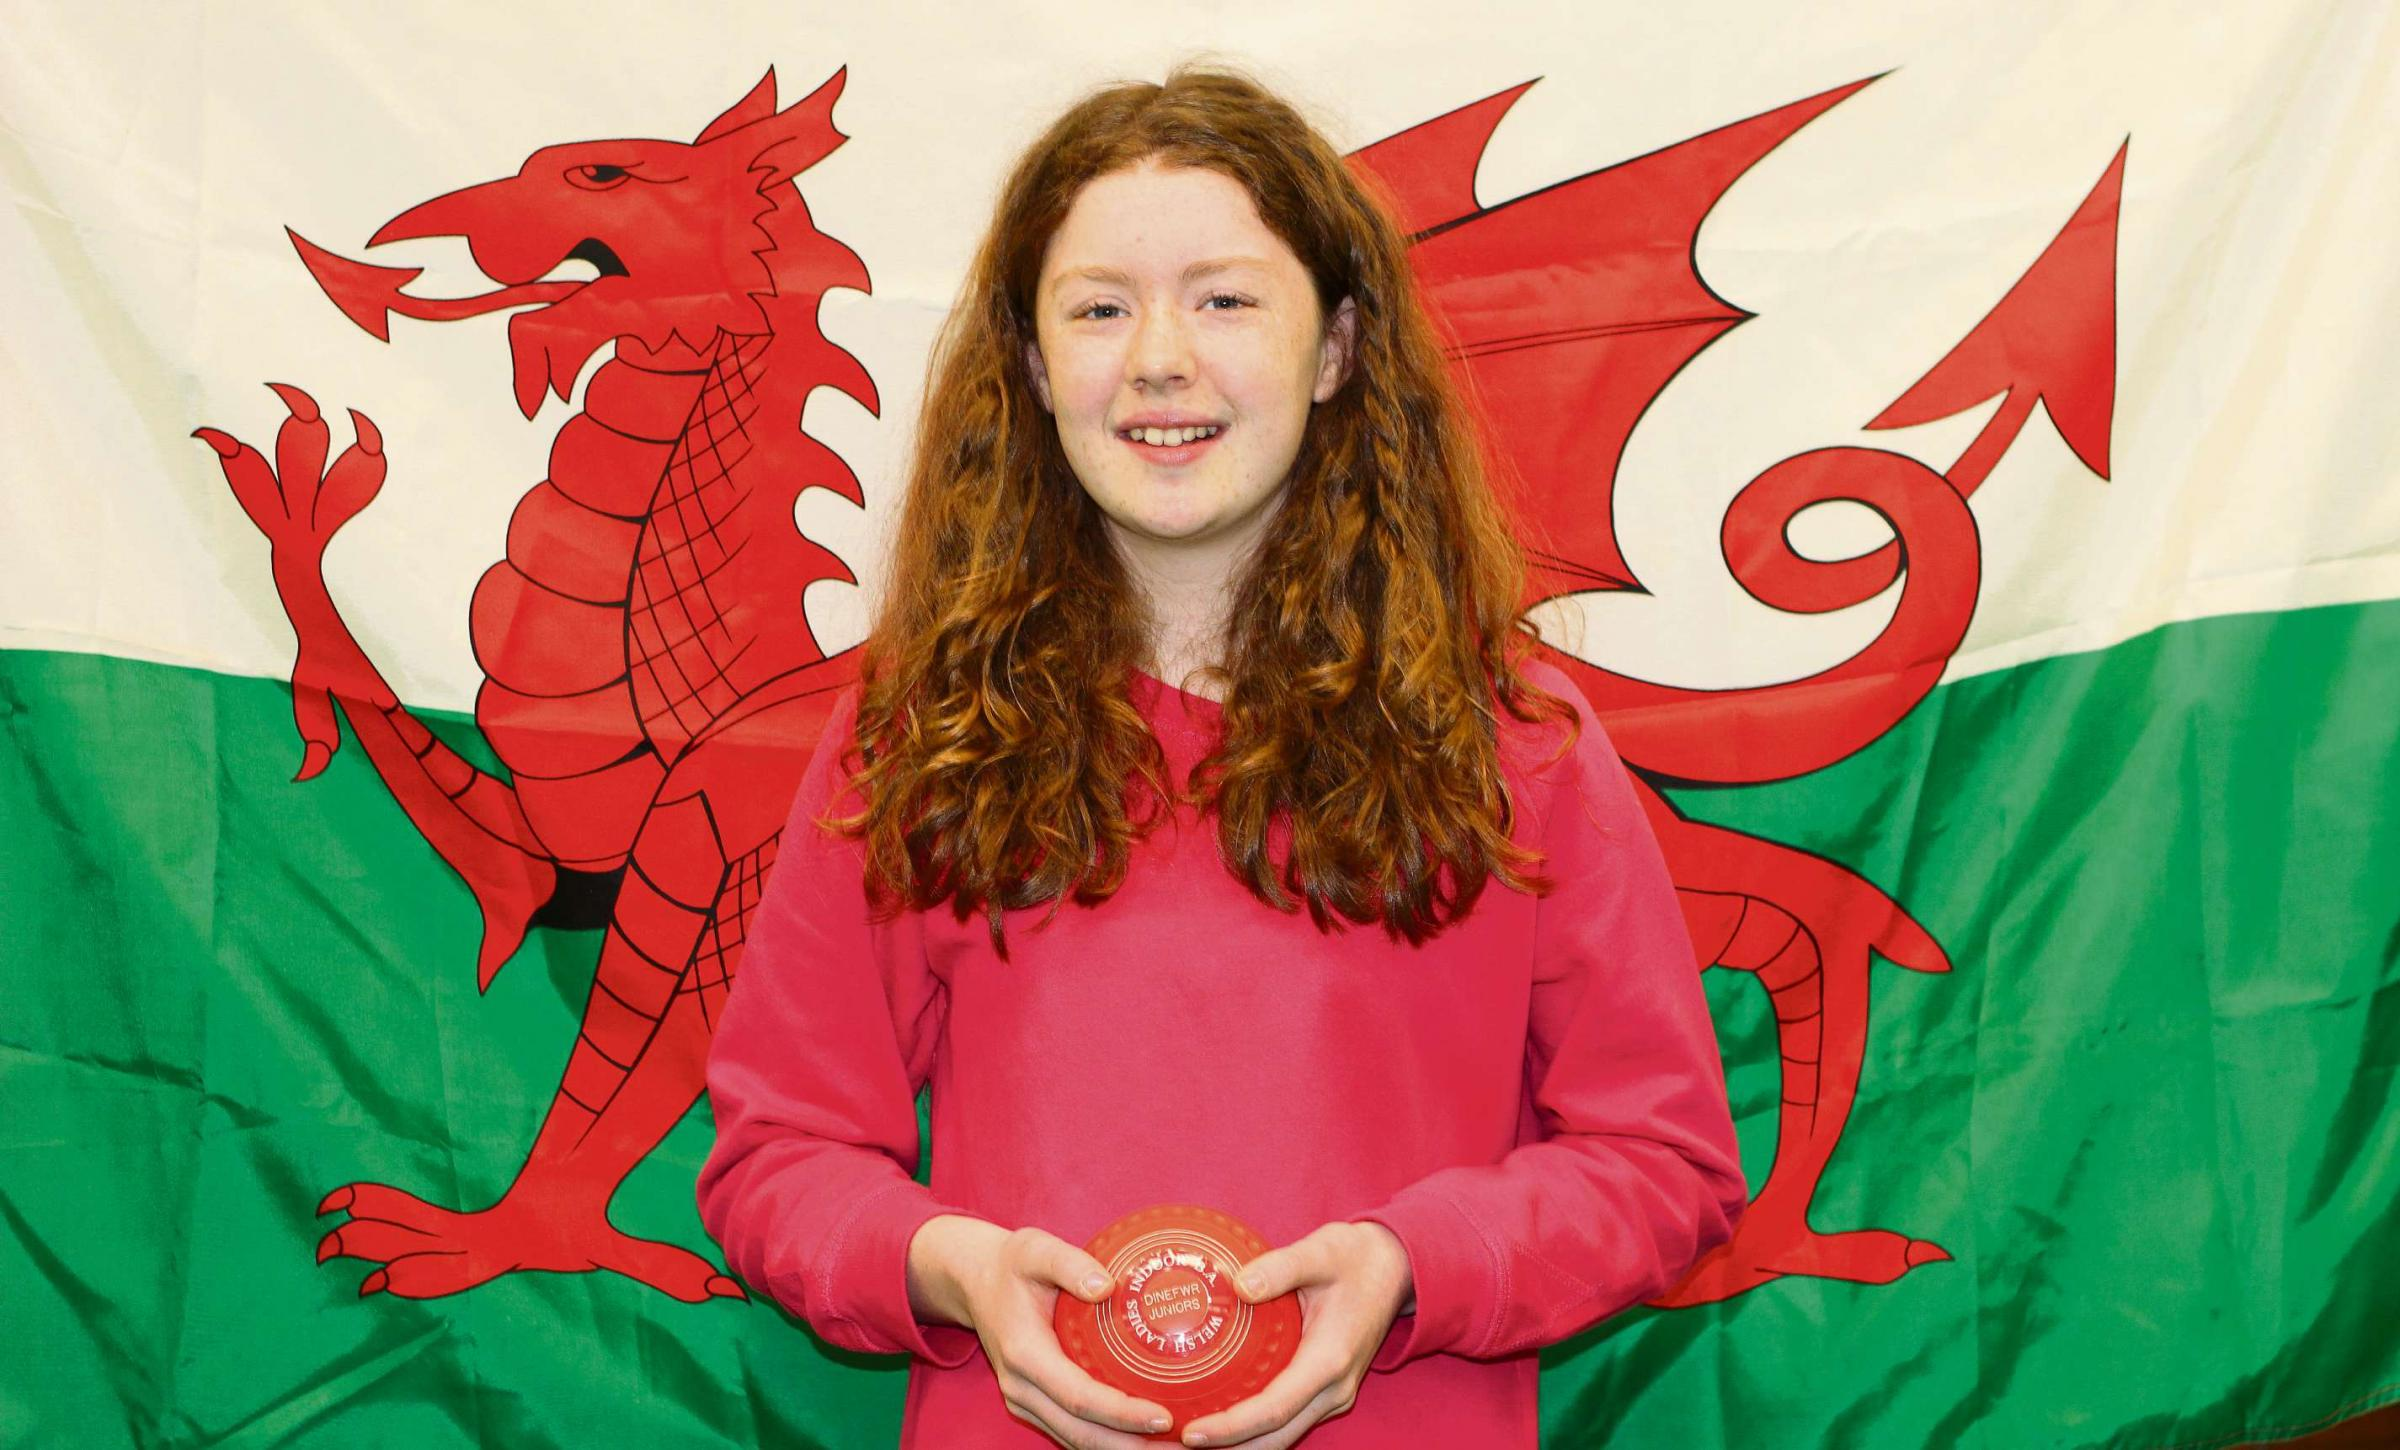 TEEN TALENT: Ffion Jones of Cwmgors, a member of Dinefwr Indoor Bowls Centre's Junior Section, has recently been selected to play for Wales.